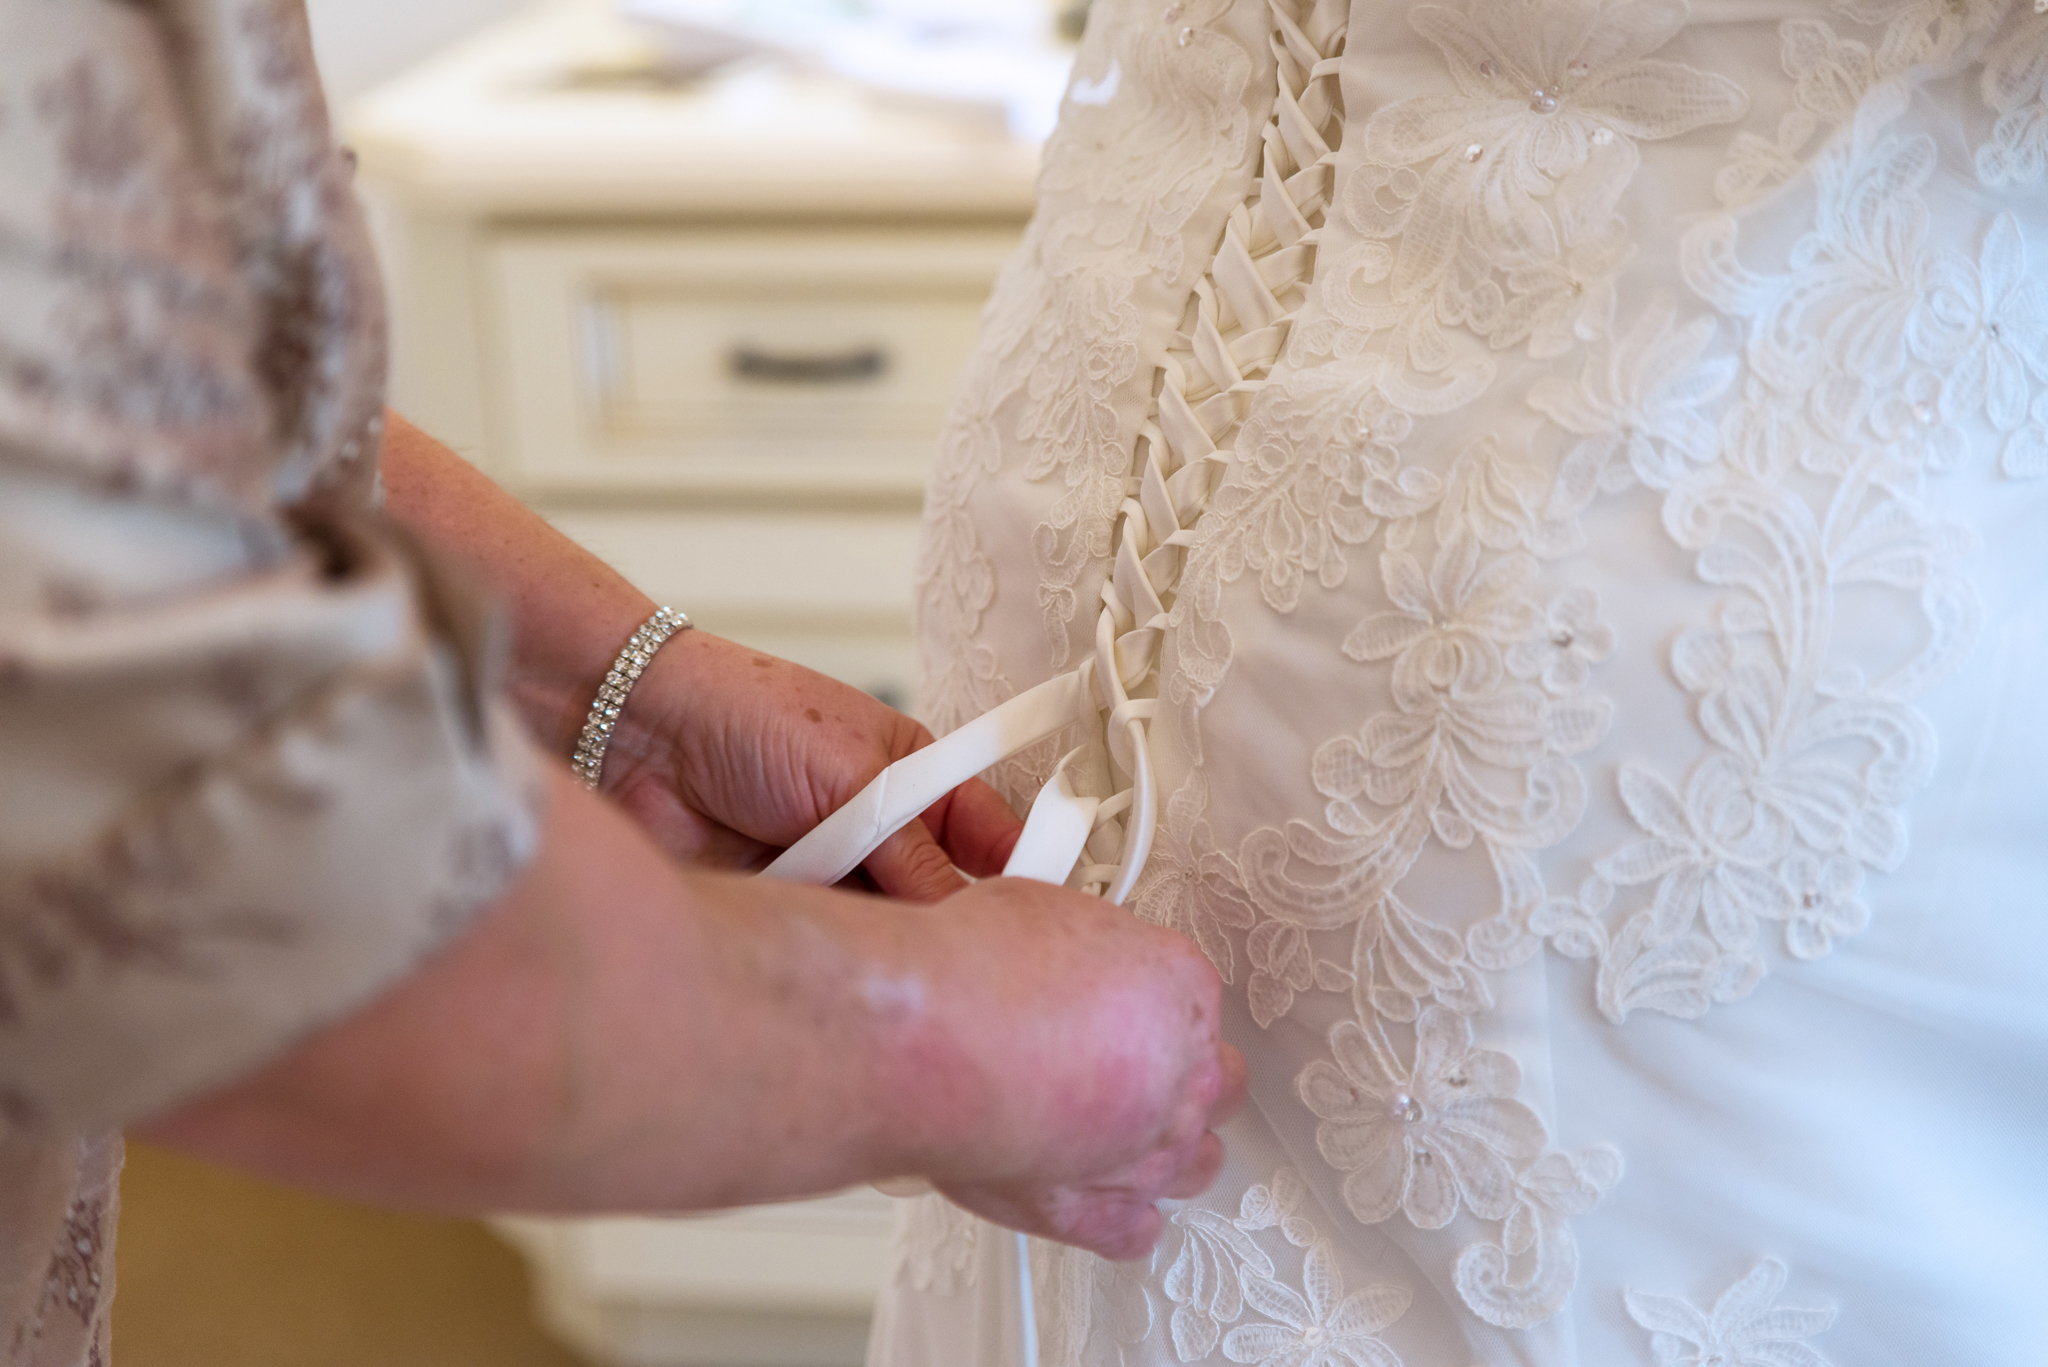 Bride getting her dress laced up